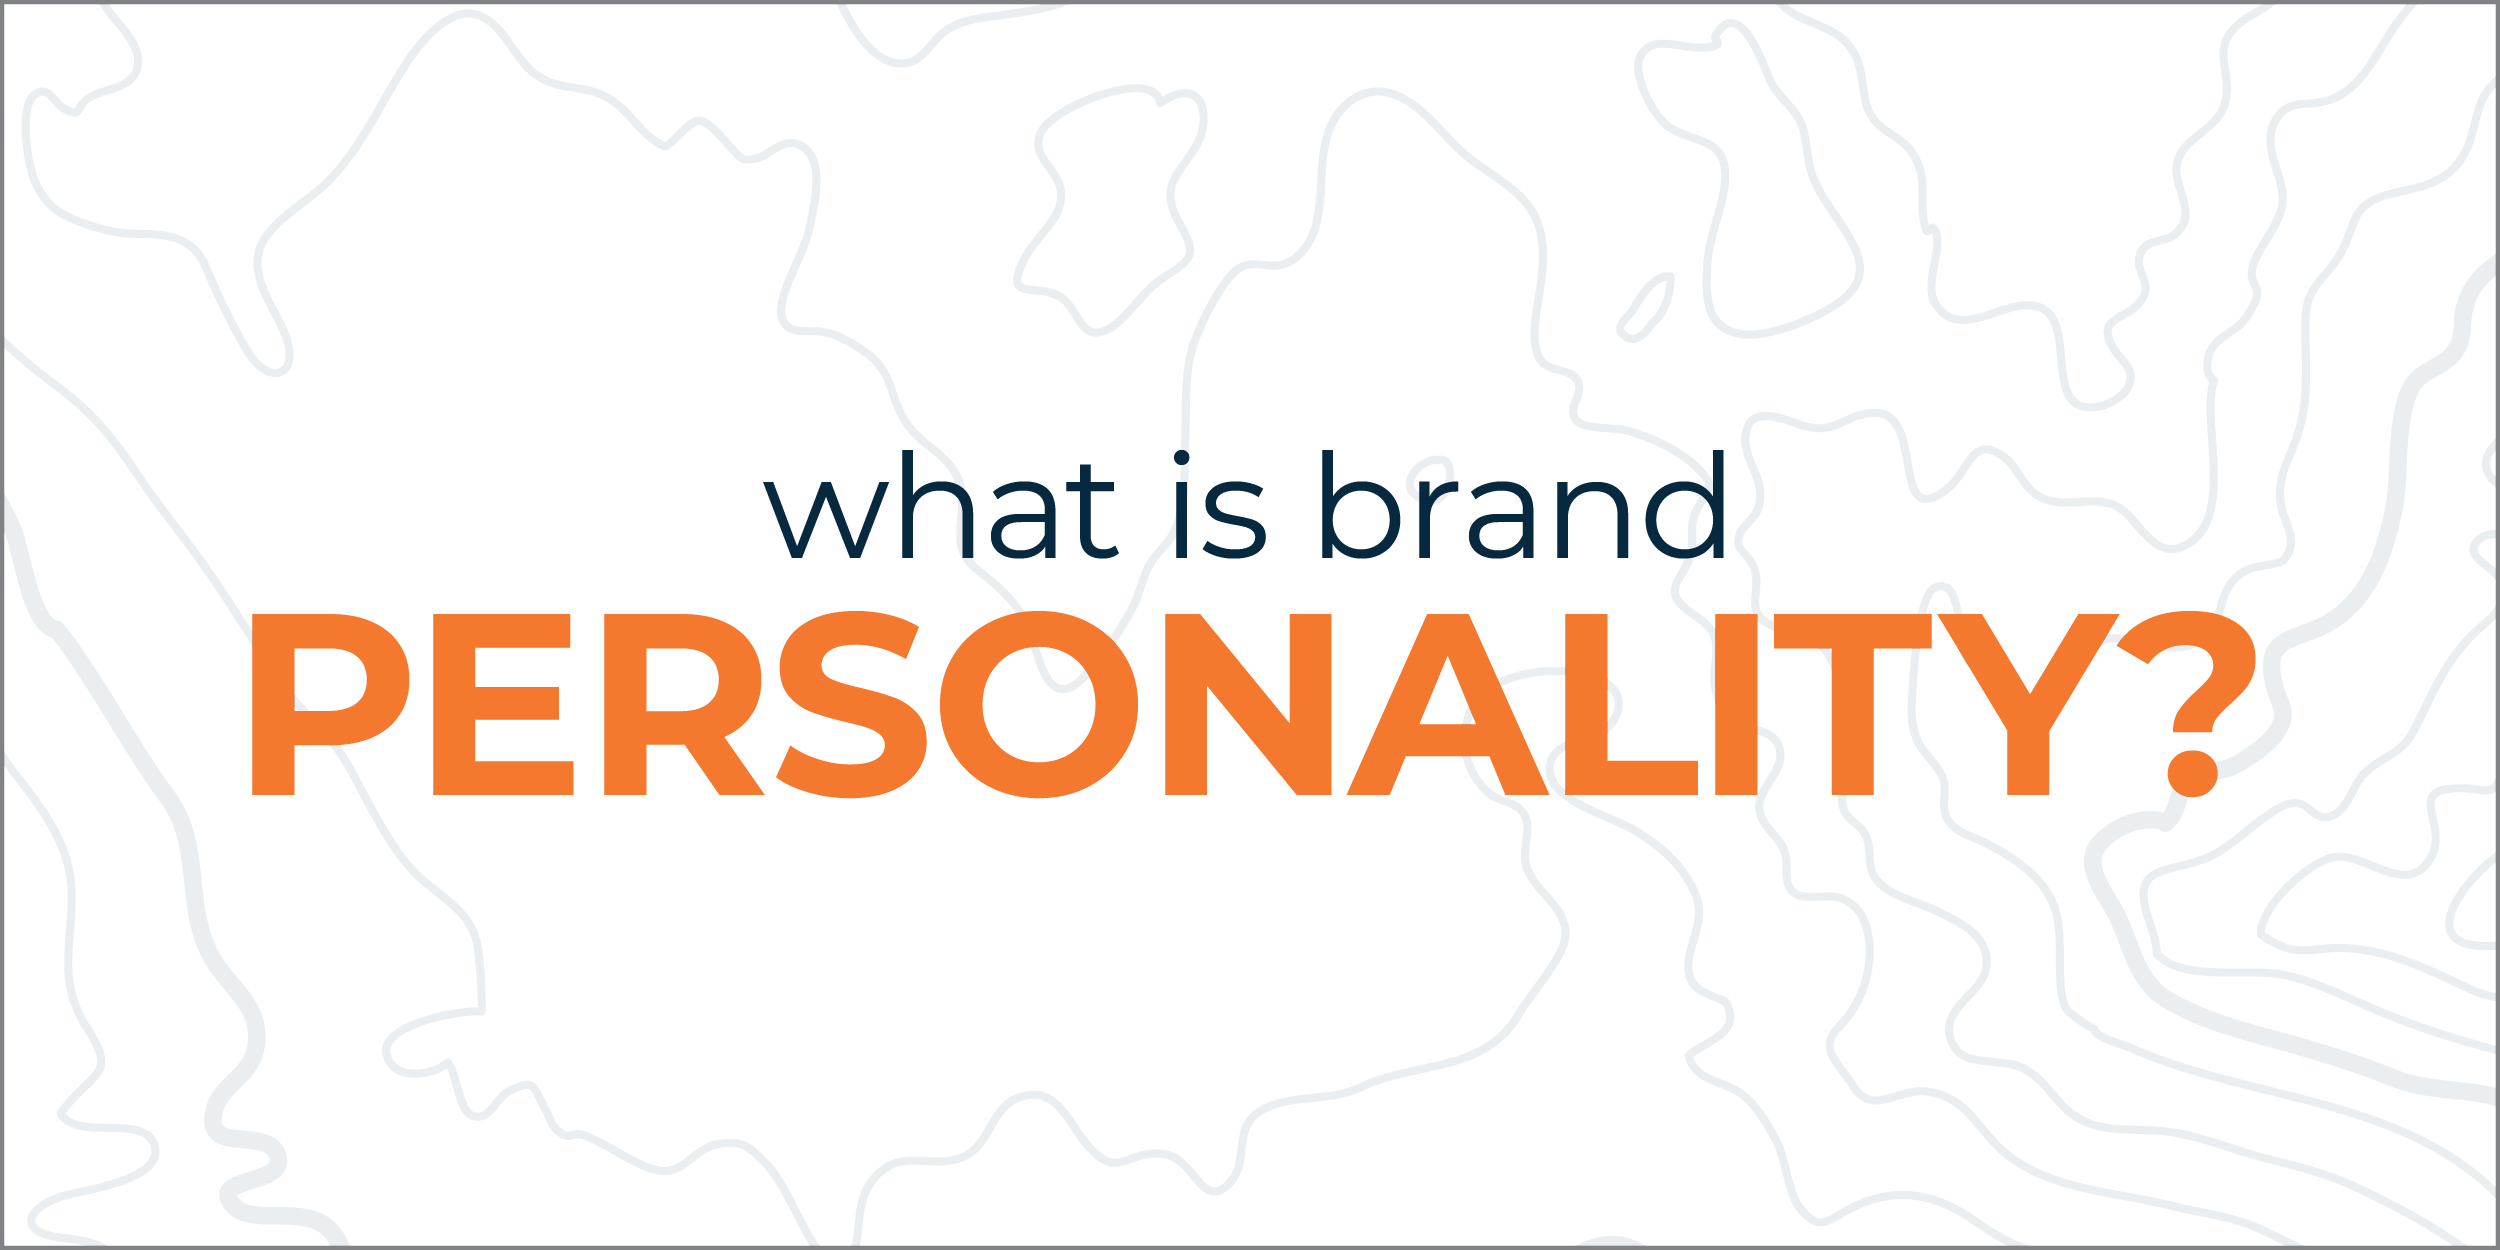 What is brand personality?